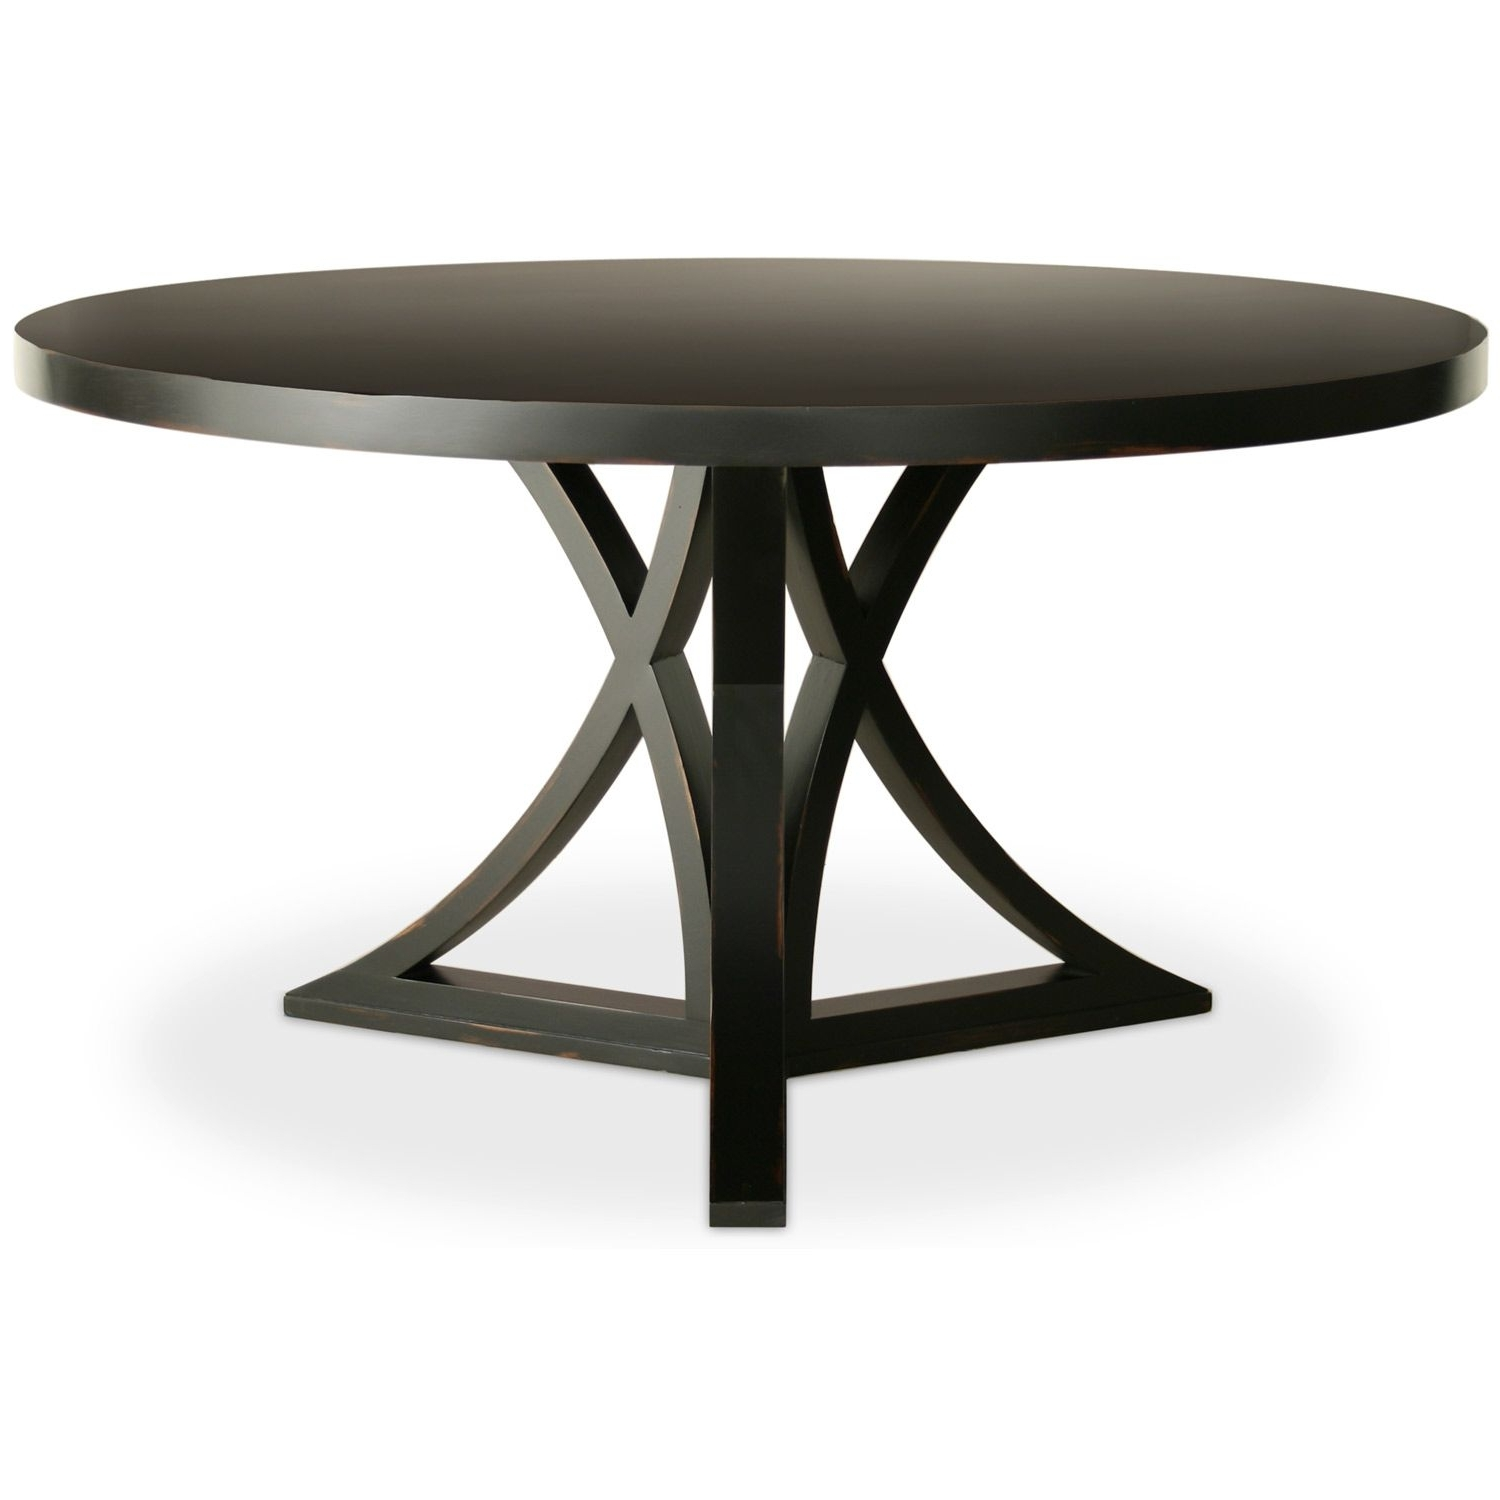 "Ina Pewter 60 Inch Counter Tables With Frosted Glass inside Newest 60"" Round Dining Set With Leaf"